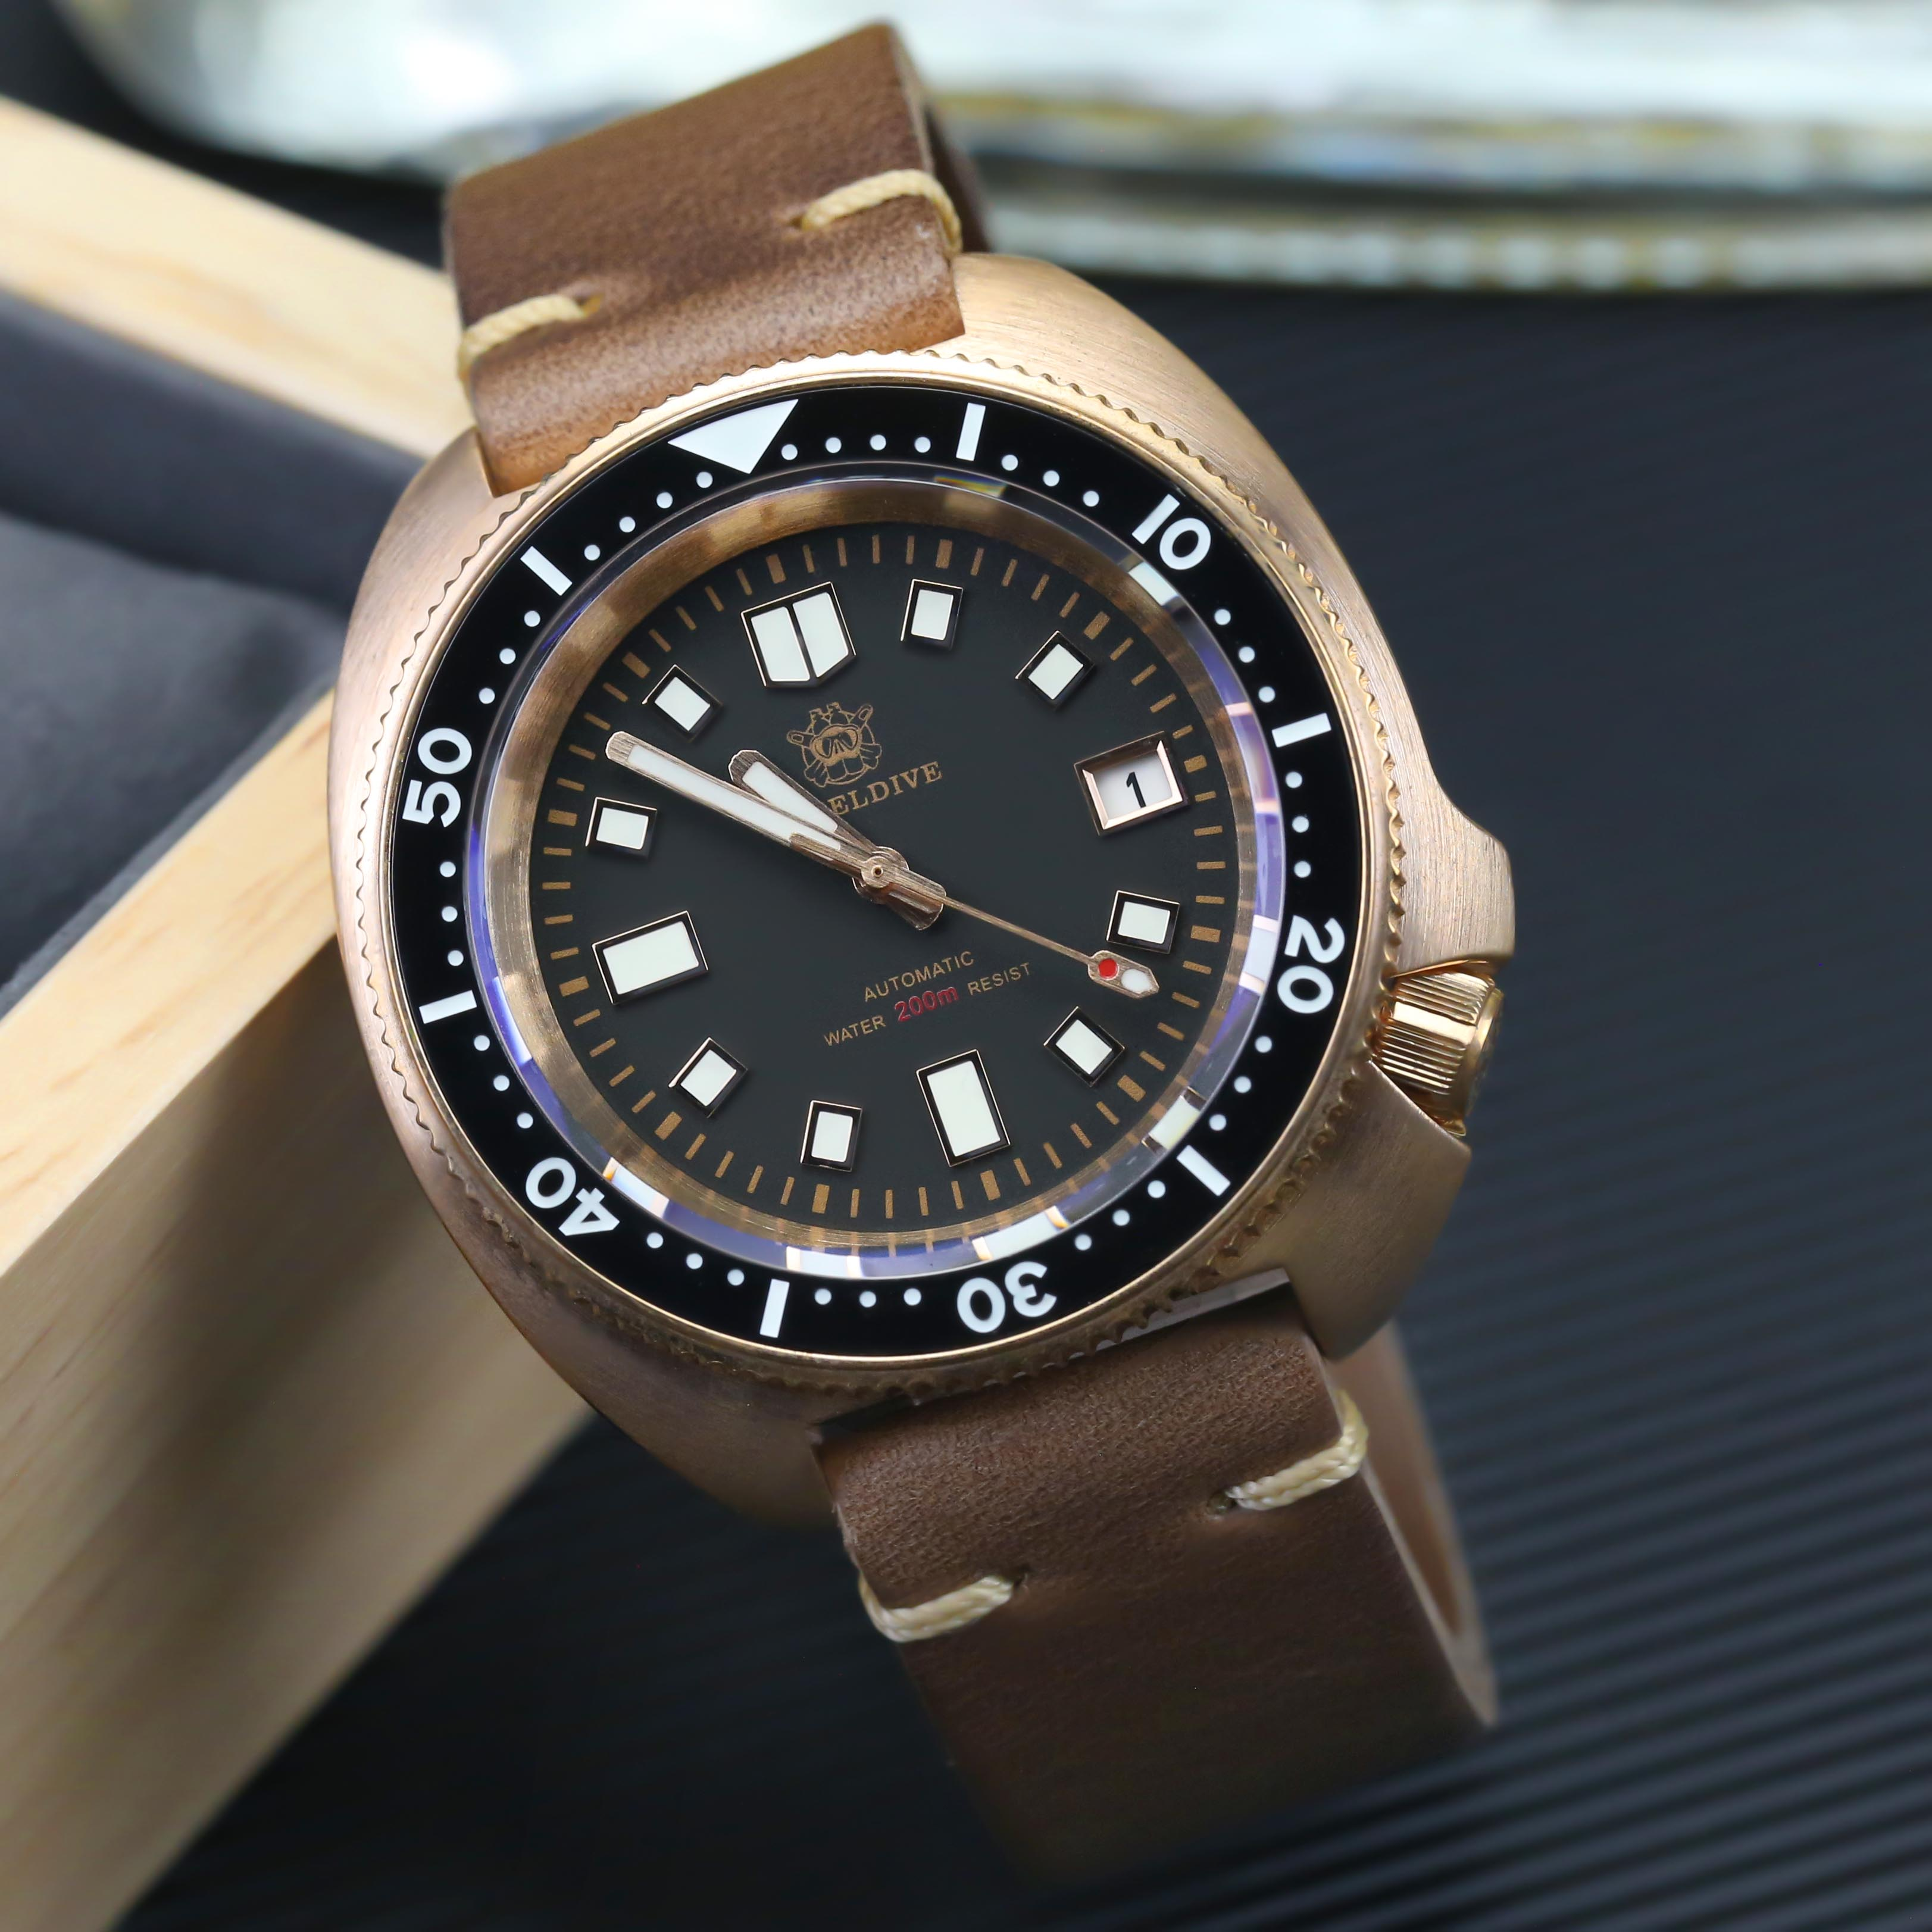 STEELDIVE 1970S Bronze Diving Watch 2020 New Arrival Abalone Bronze Mechanical Watch Automatic Sapphire Crystal NH35A Watch Dive